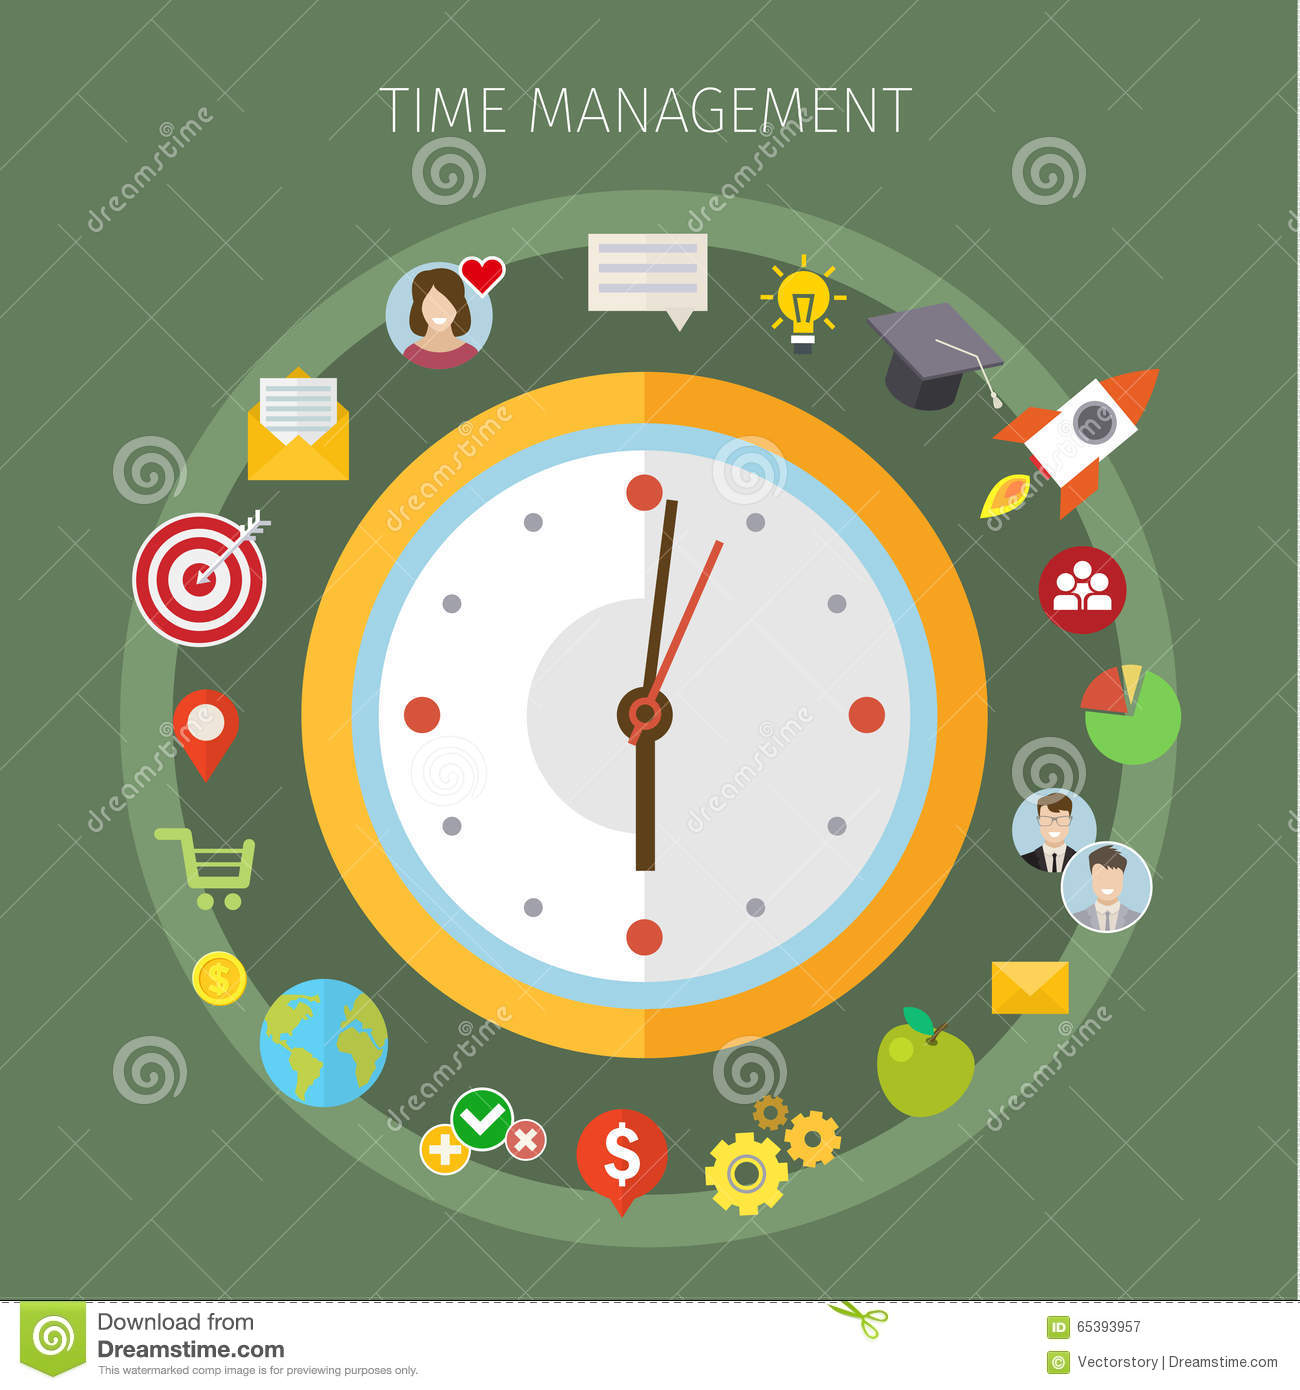 Time Management: Concept Of Effective Time Management Stock Vector